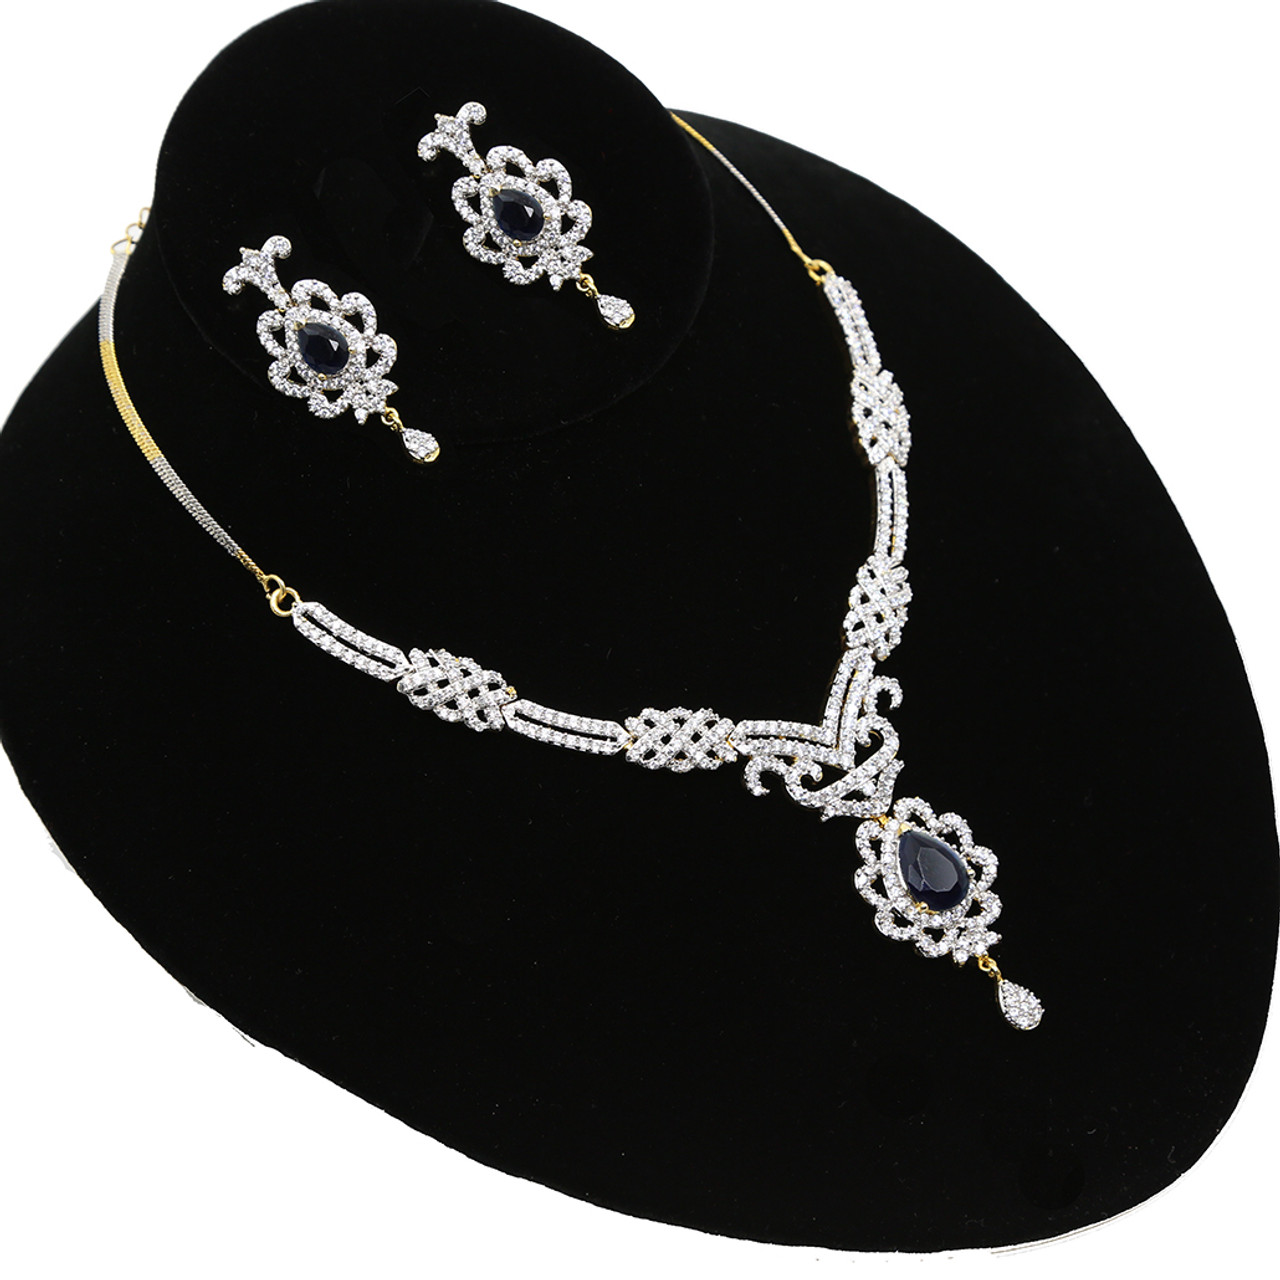 4feaaa8c9 Authentic Necklace Set with Simulated American Diamond Sapphire ...